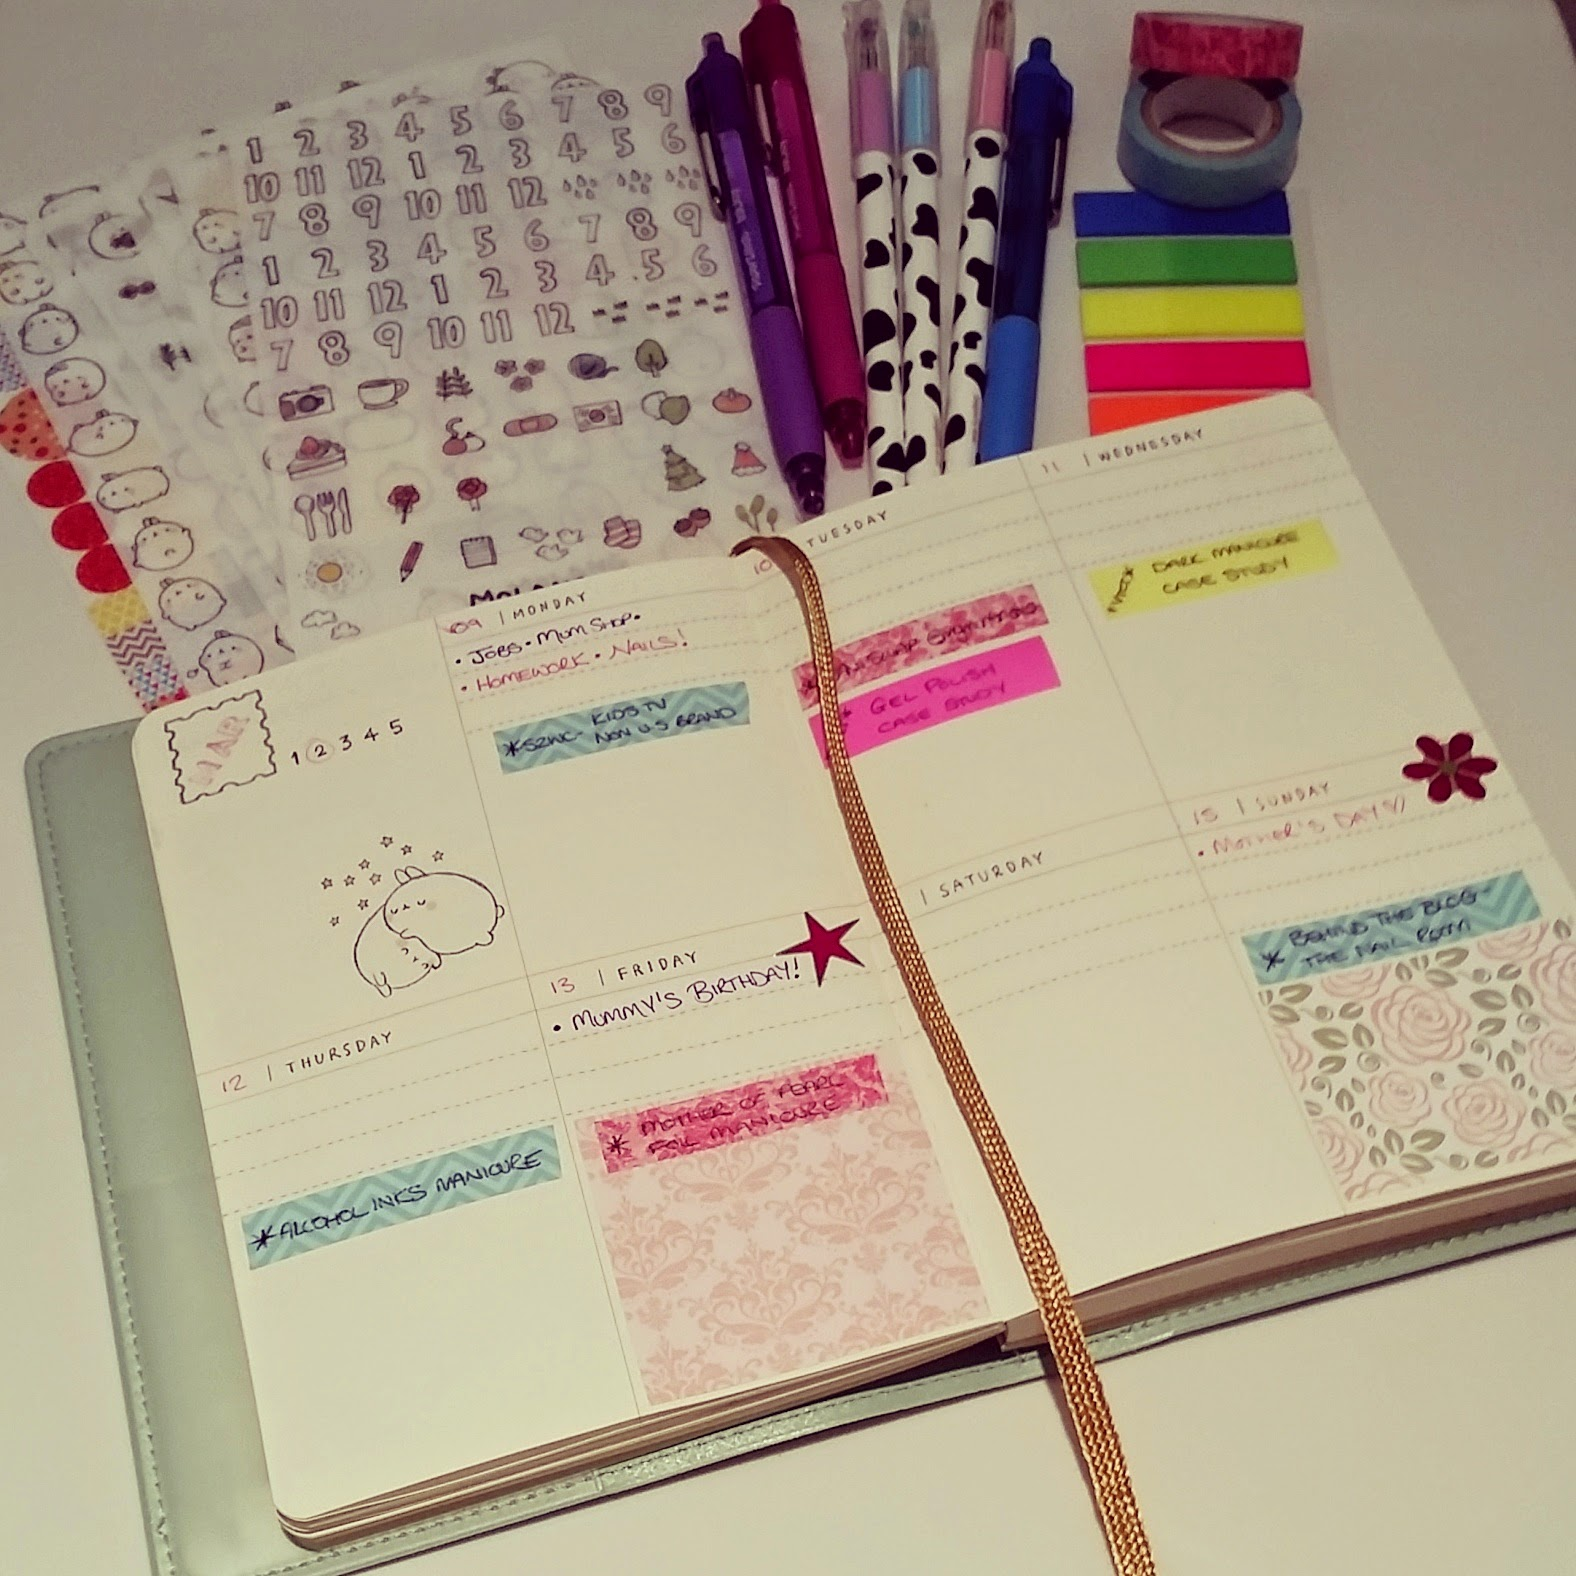 molang-diary-planner-journal-blogger